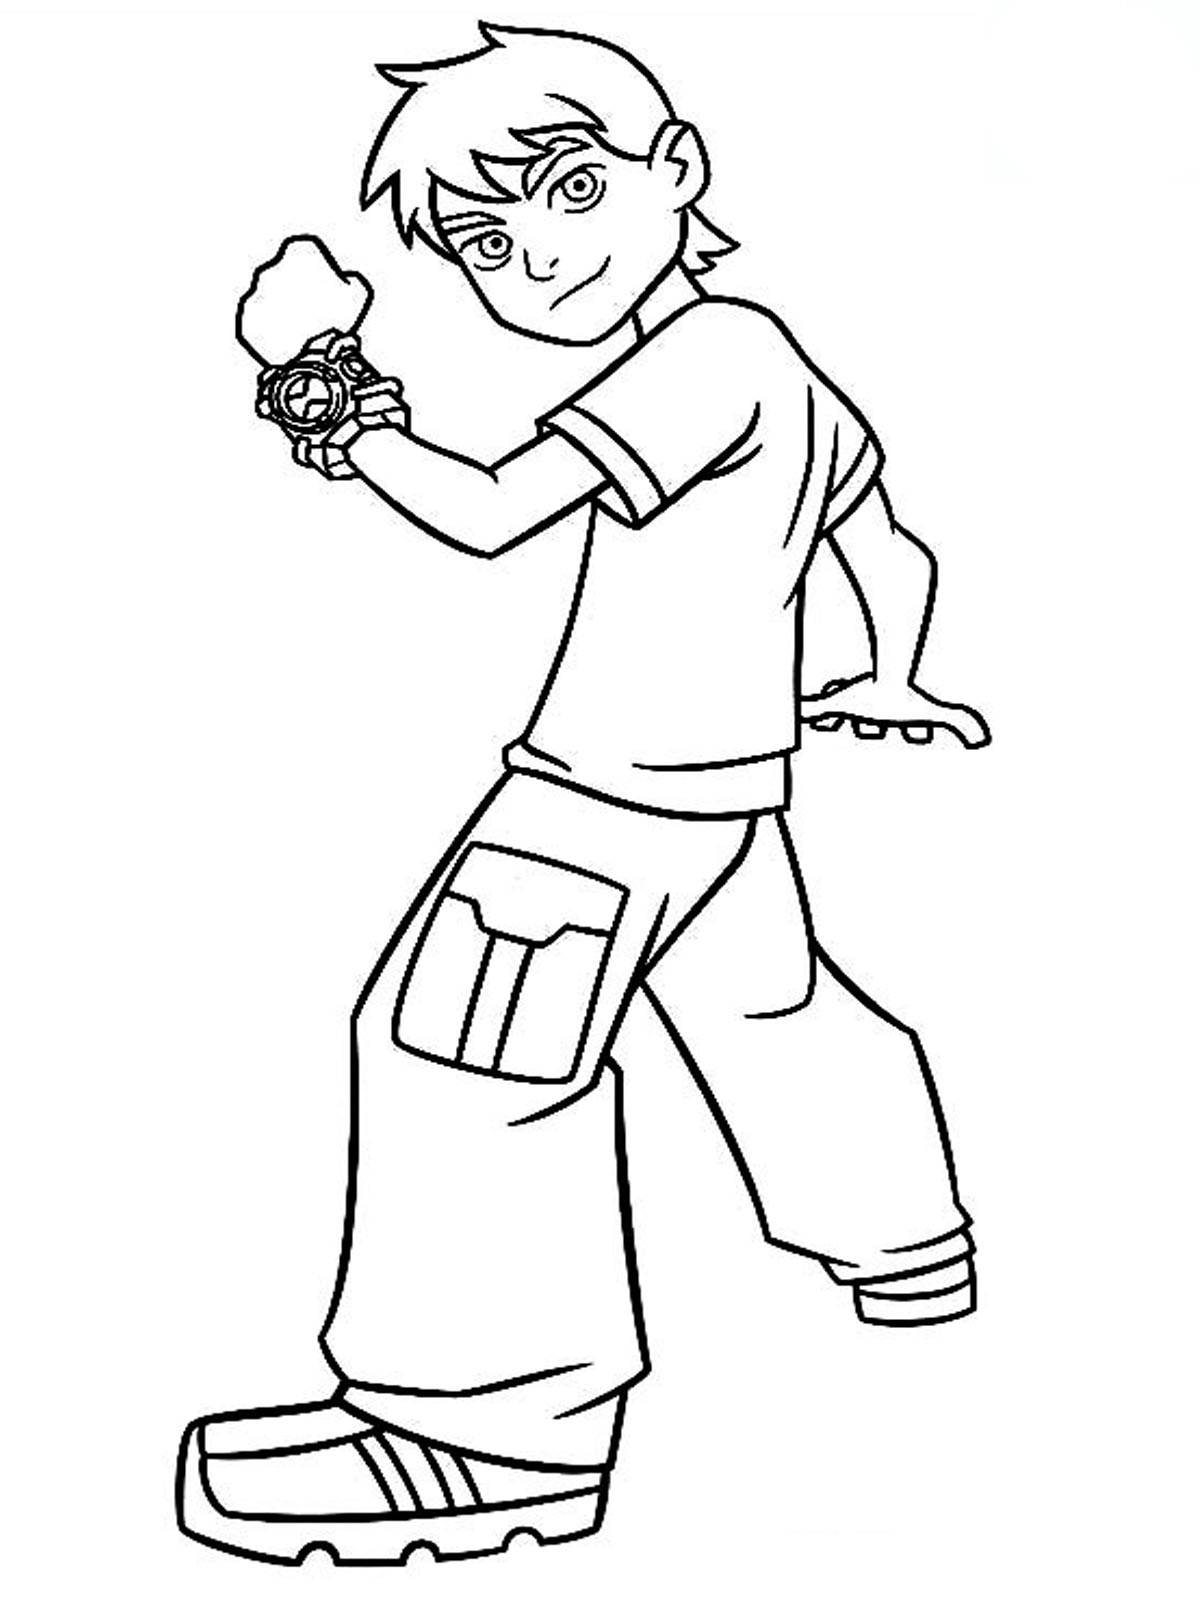 ben 10 coloring pages - photo#19